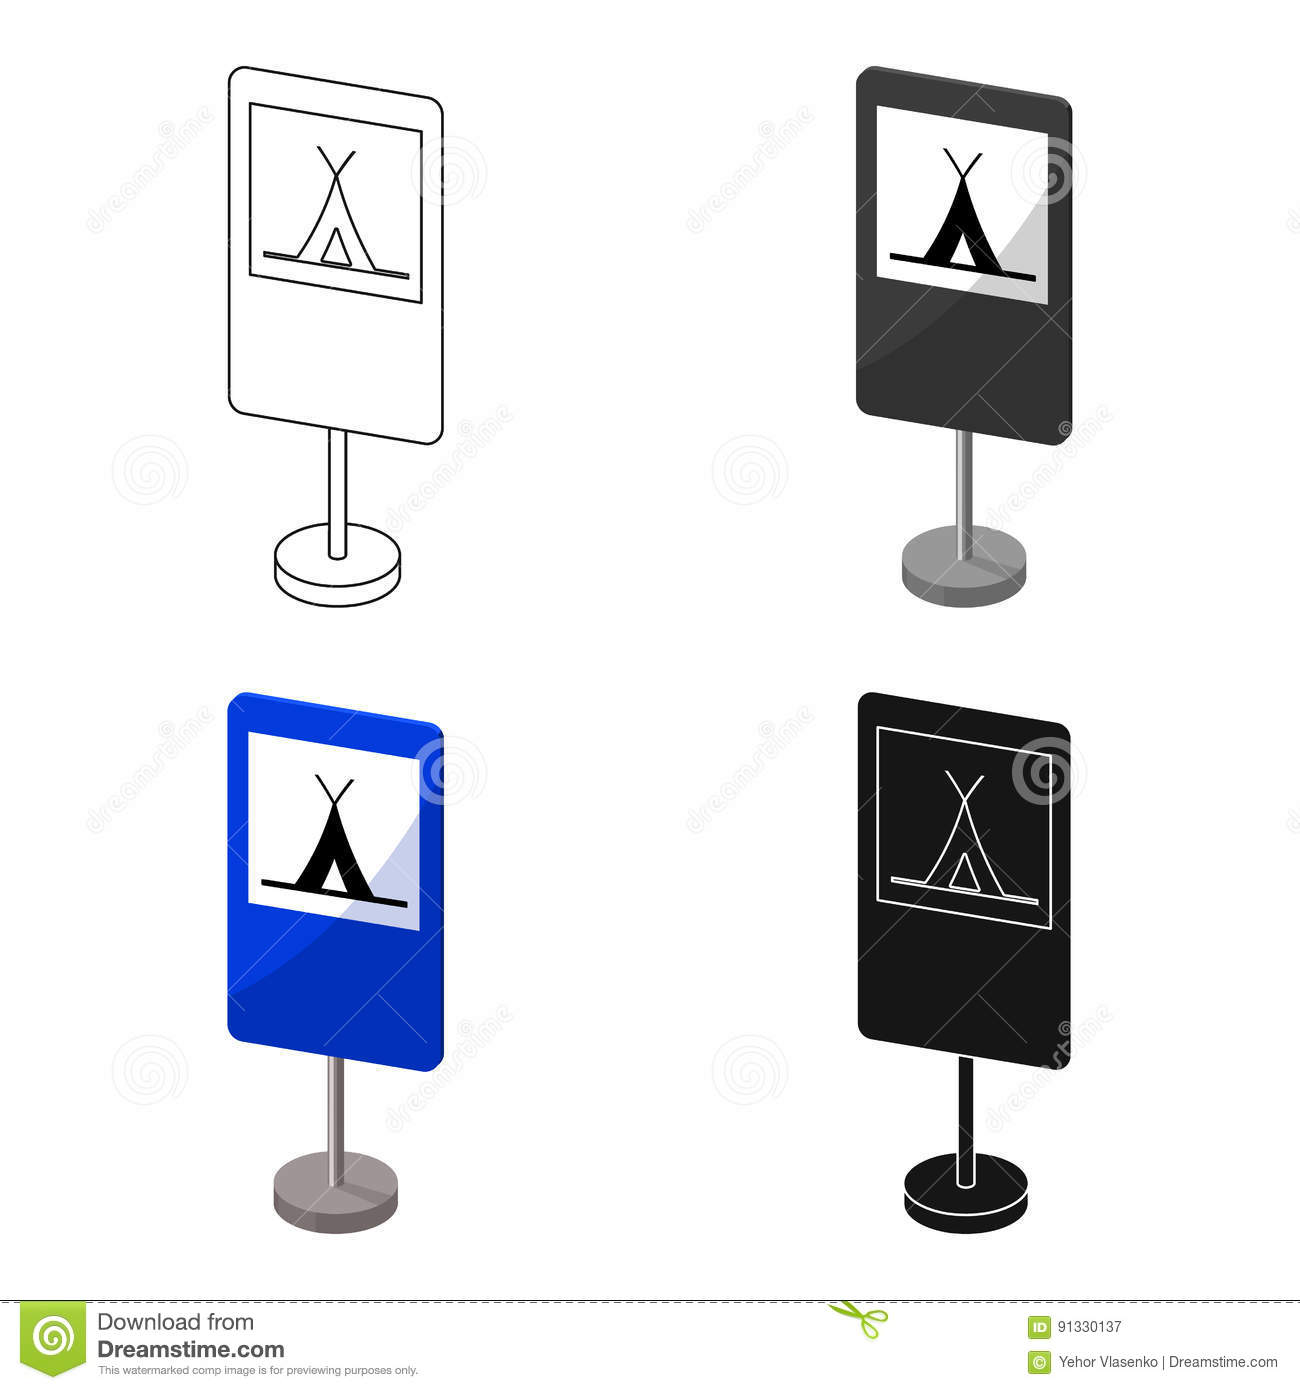 Guide Road Sign Icon In Cartoon Style Isolated On White Background Road Signs Symbol Stock